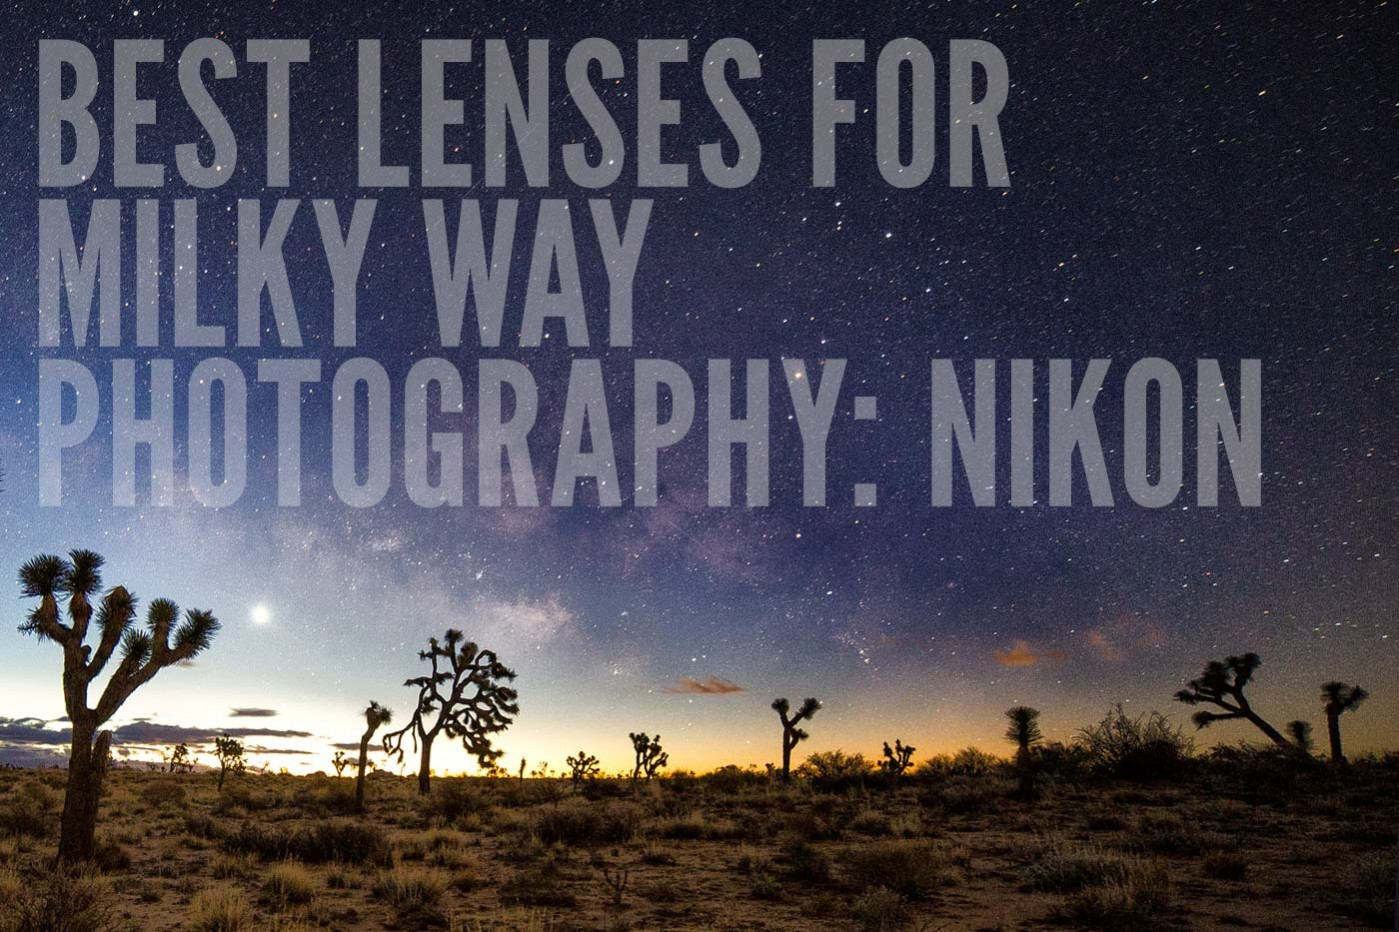 Best Lenses for Night Photography: Nikon Astrophotography - Best Lenses For Milky Way Photography: Nikon Astrophotographers